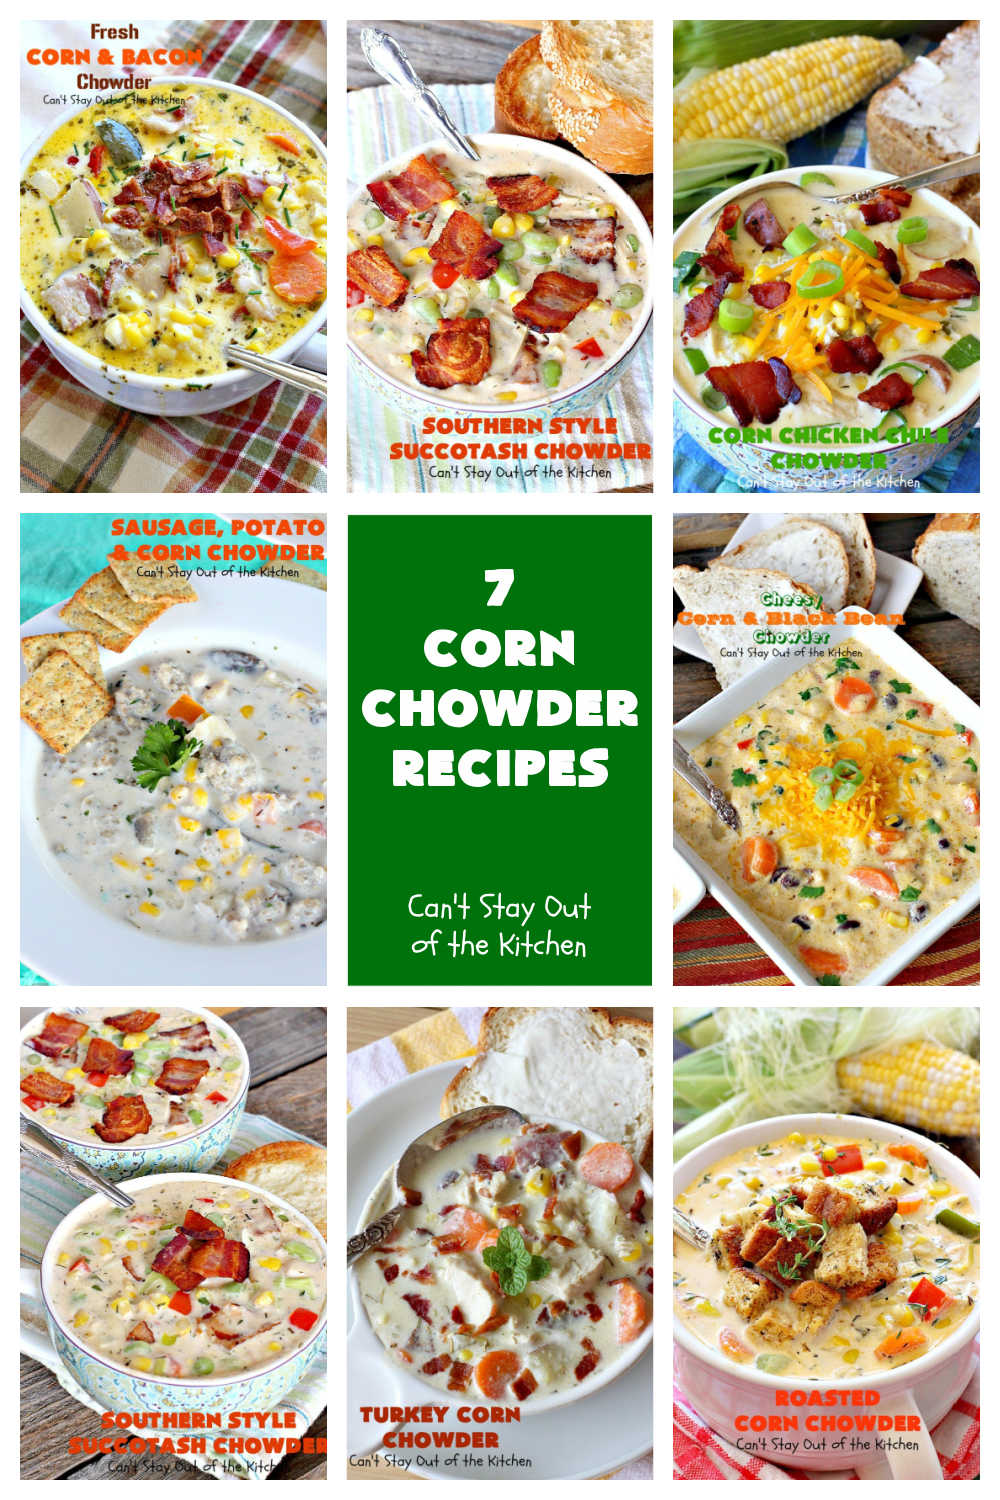 7 Corn Chowder Recipes | Can't Stay Out of the Kitchen | 7 of the tastiest #CornChowder #recipes ever! Terrific comfort food meal any time of the year! #corn #chowder #soup #7CornChowderRecipes